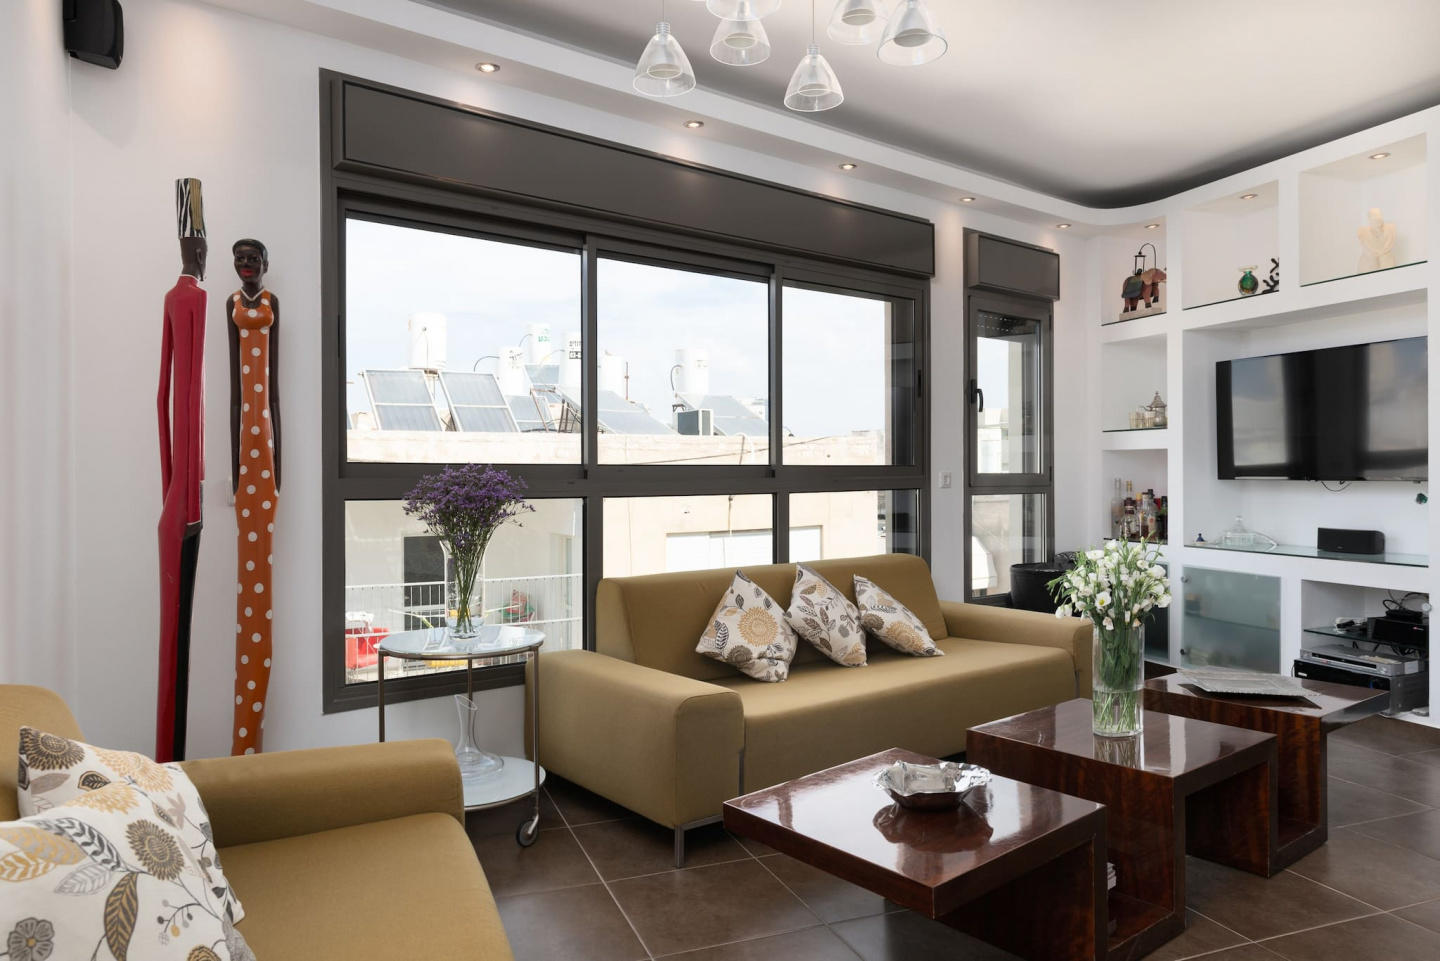 Amazing Duplex 3 Bedrooms With A Rooftop Balcony Slide-37